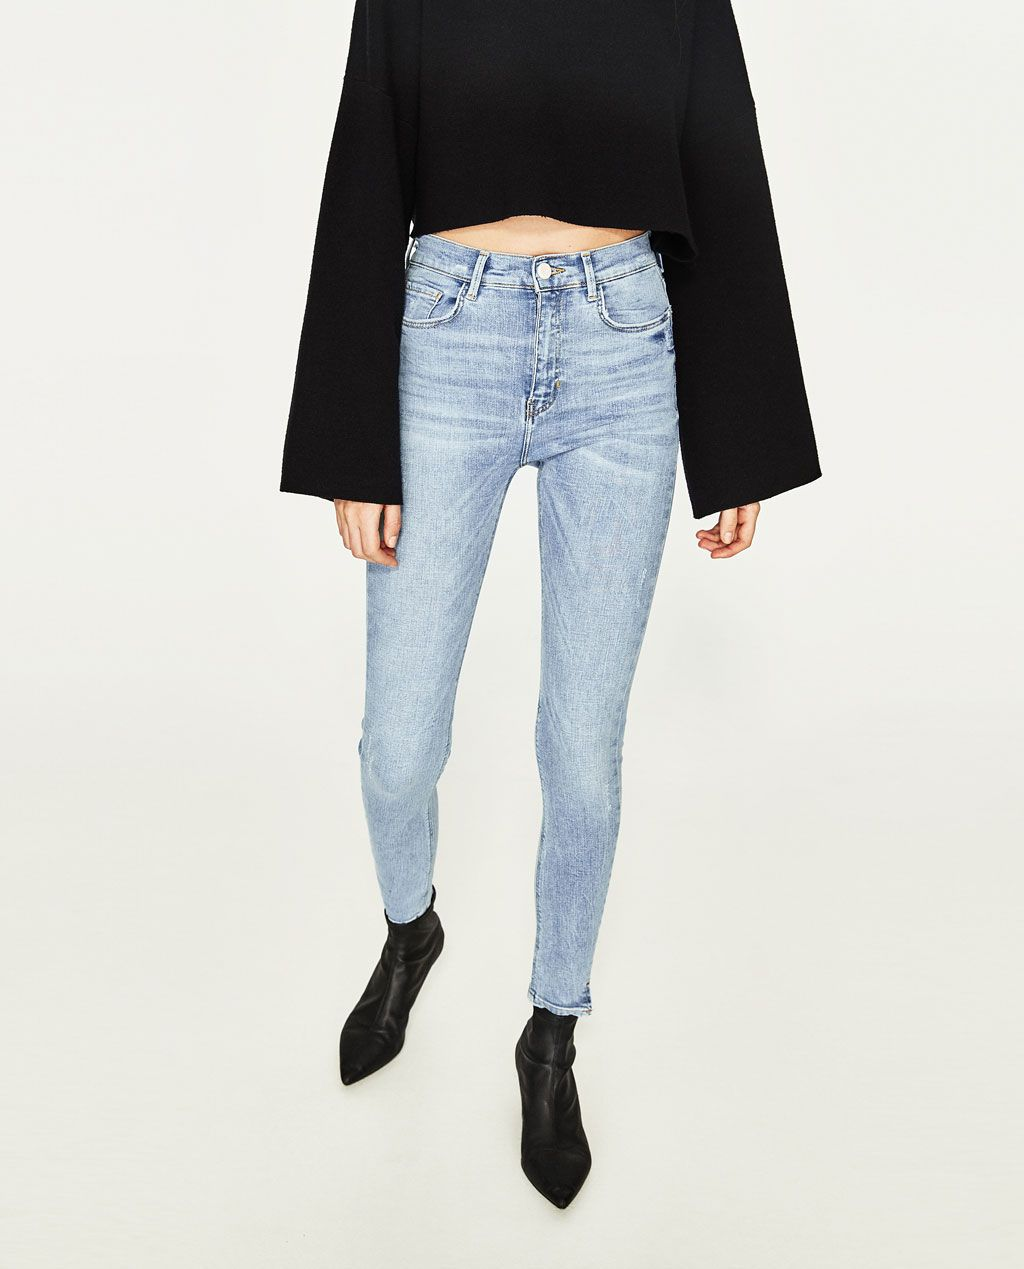 ed3a23fd HIGH-RISE CROPPED SLIM FIT JEANS-Skinny-JEANS-WOMAN   ZARA United States